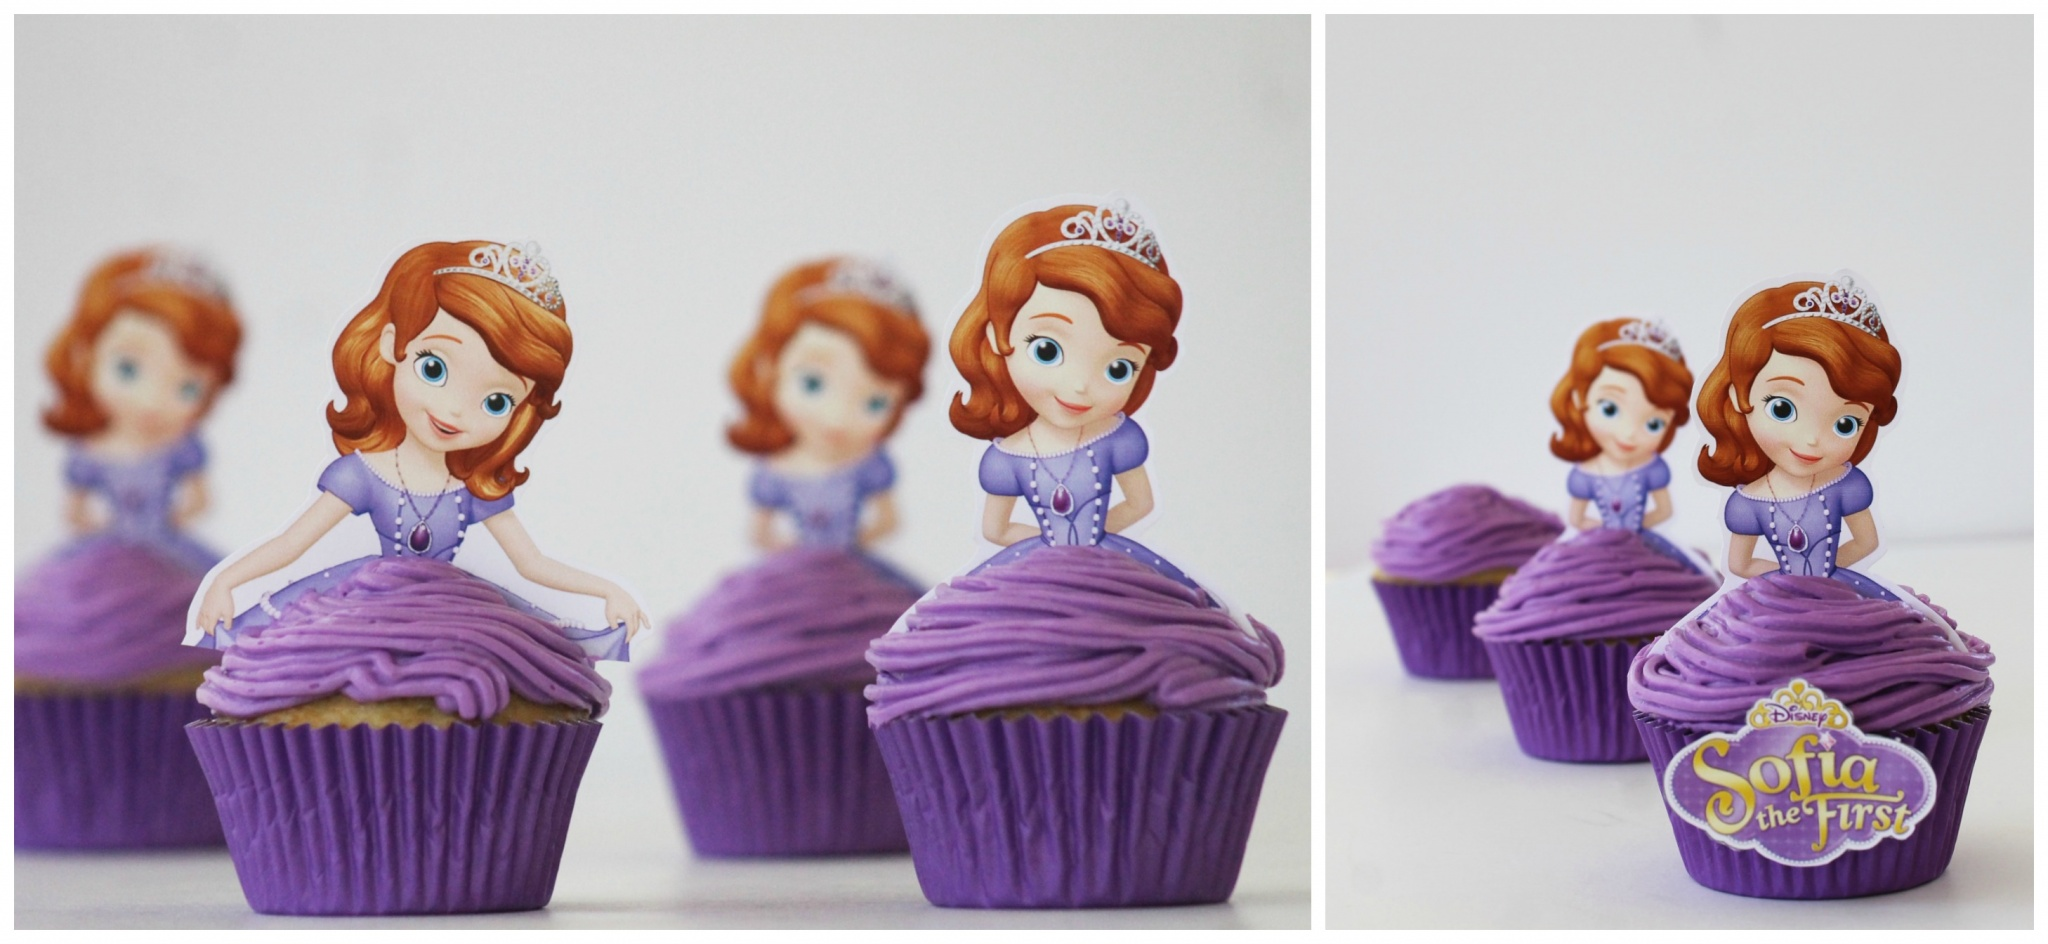 Disney Princess Sofia the First cupcakes for princess party